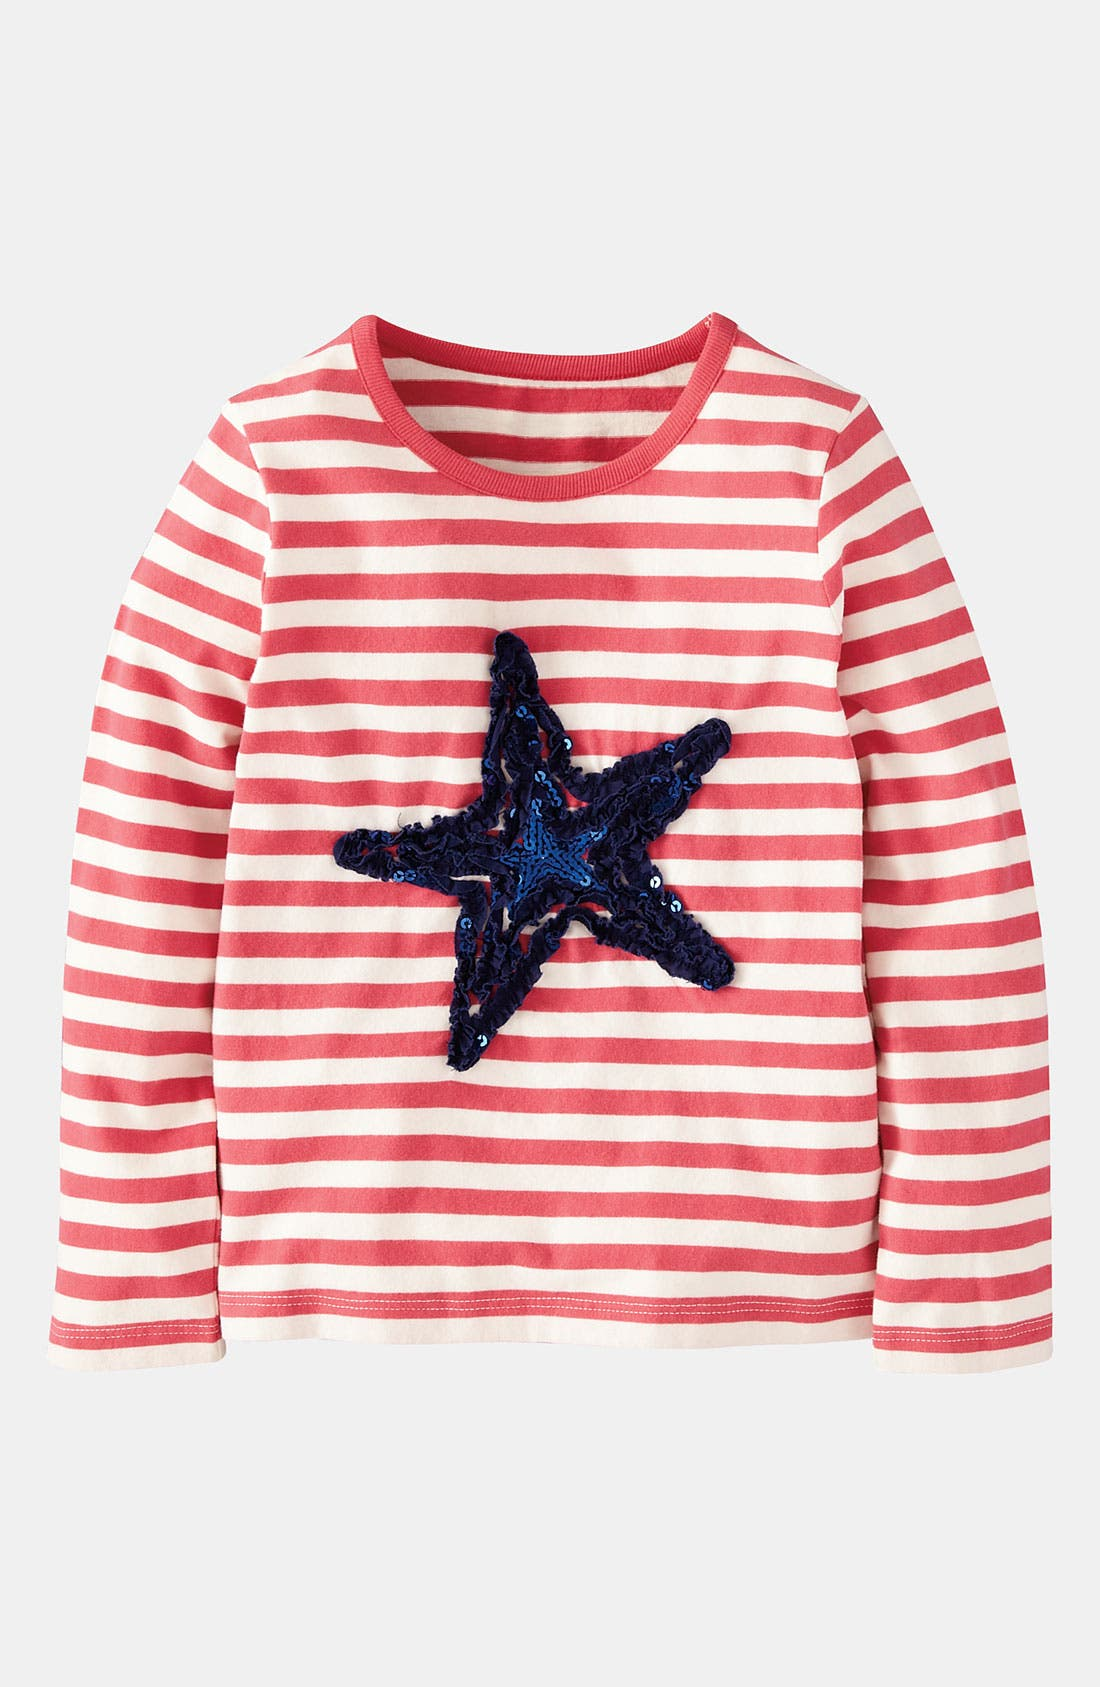 Main Image - Mini Boden 'Stripe & Sparkle' Tee (Little Girls & Big Girls)